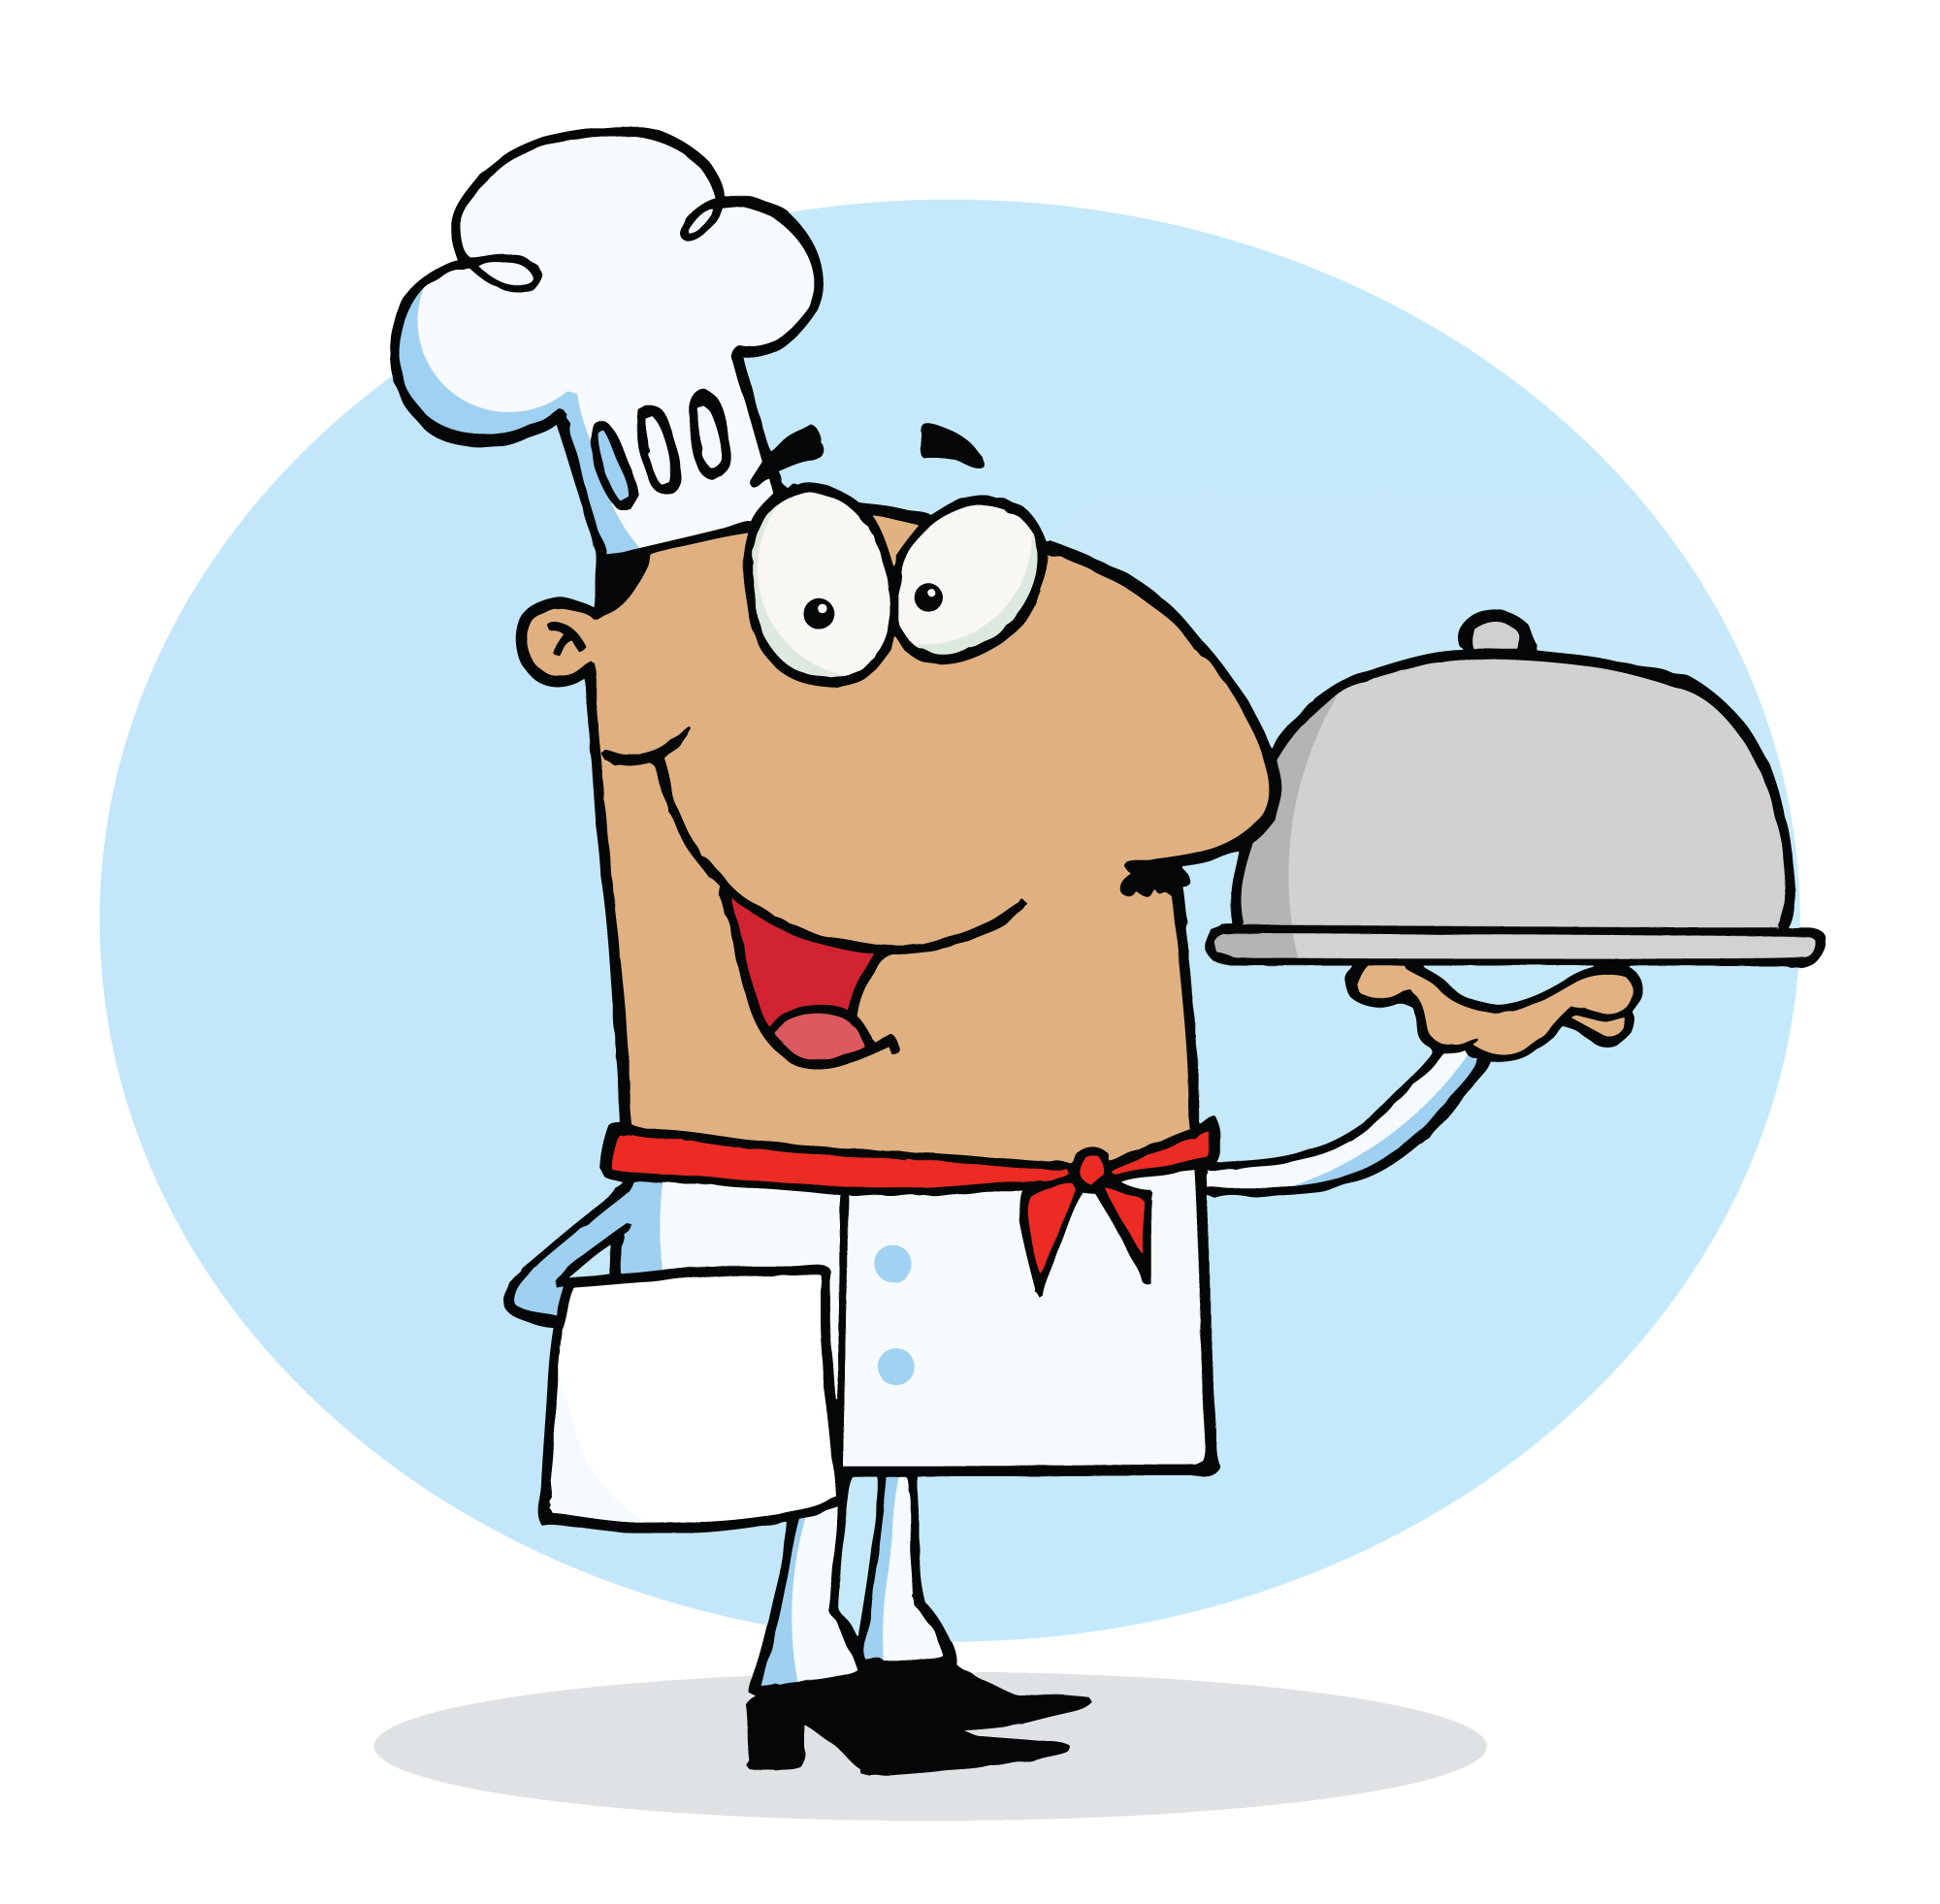 Chef clipart chef tool. Kitchen tools at getdrawings